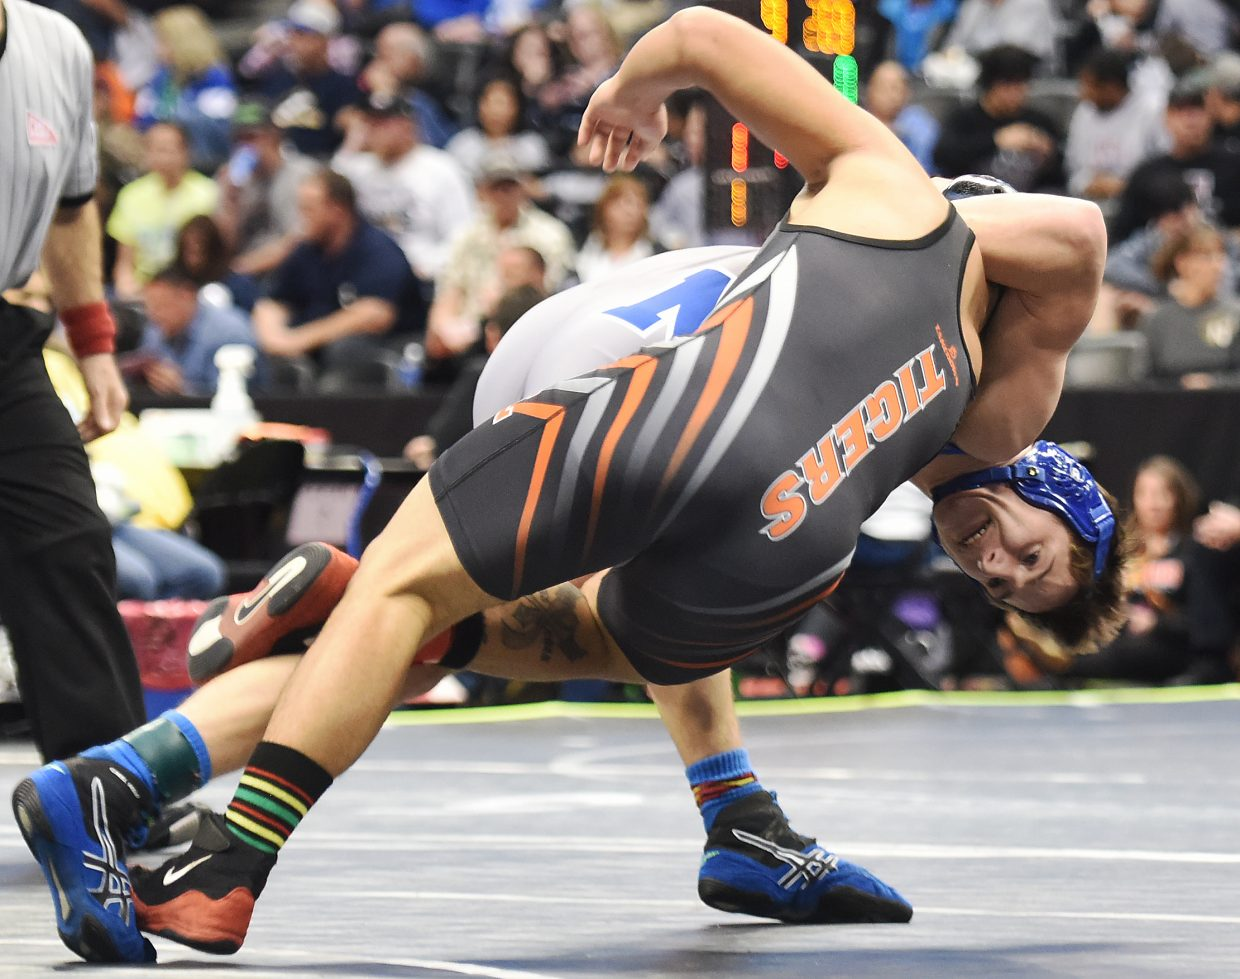 Moffat County's Mikinzie Kilmper throws La Junta wrestler Joe Martinez to the mat Friday during the Class 3A state wrestling tournament in Denver. The day didn't go as the Bulldogs had hoped, but Kilmper was one of three Moffat wrestlers to bounce back from a loss in the tournament to advance to Saturday.